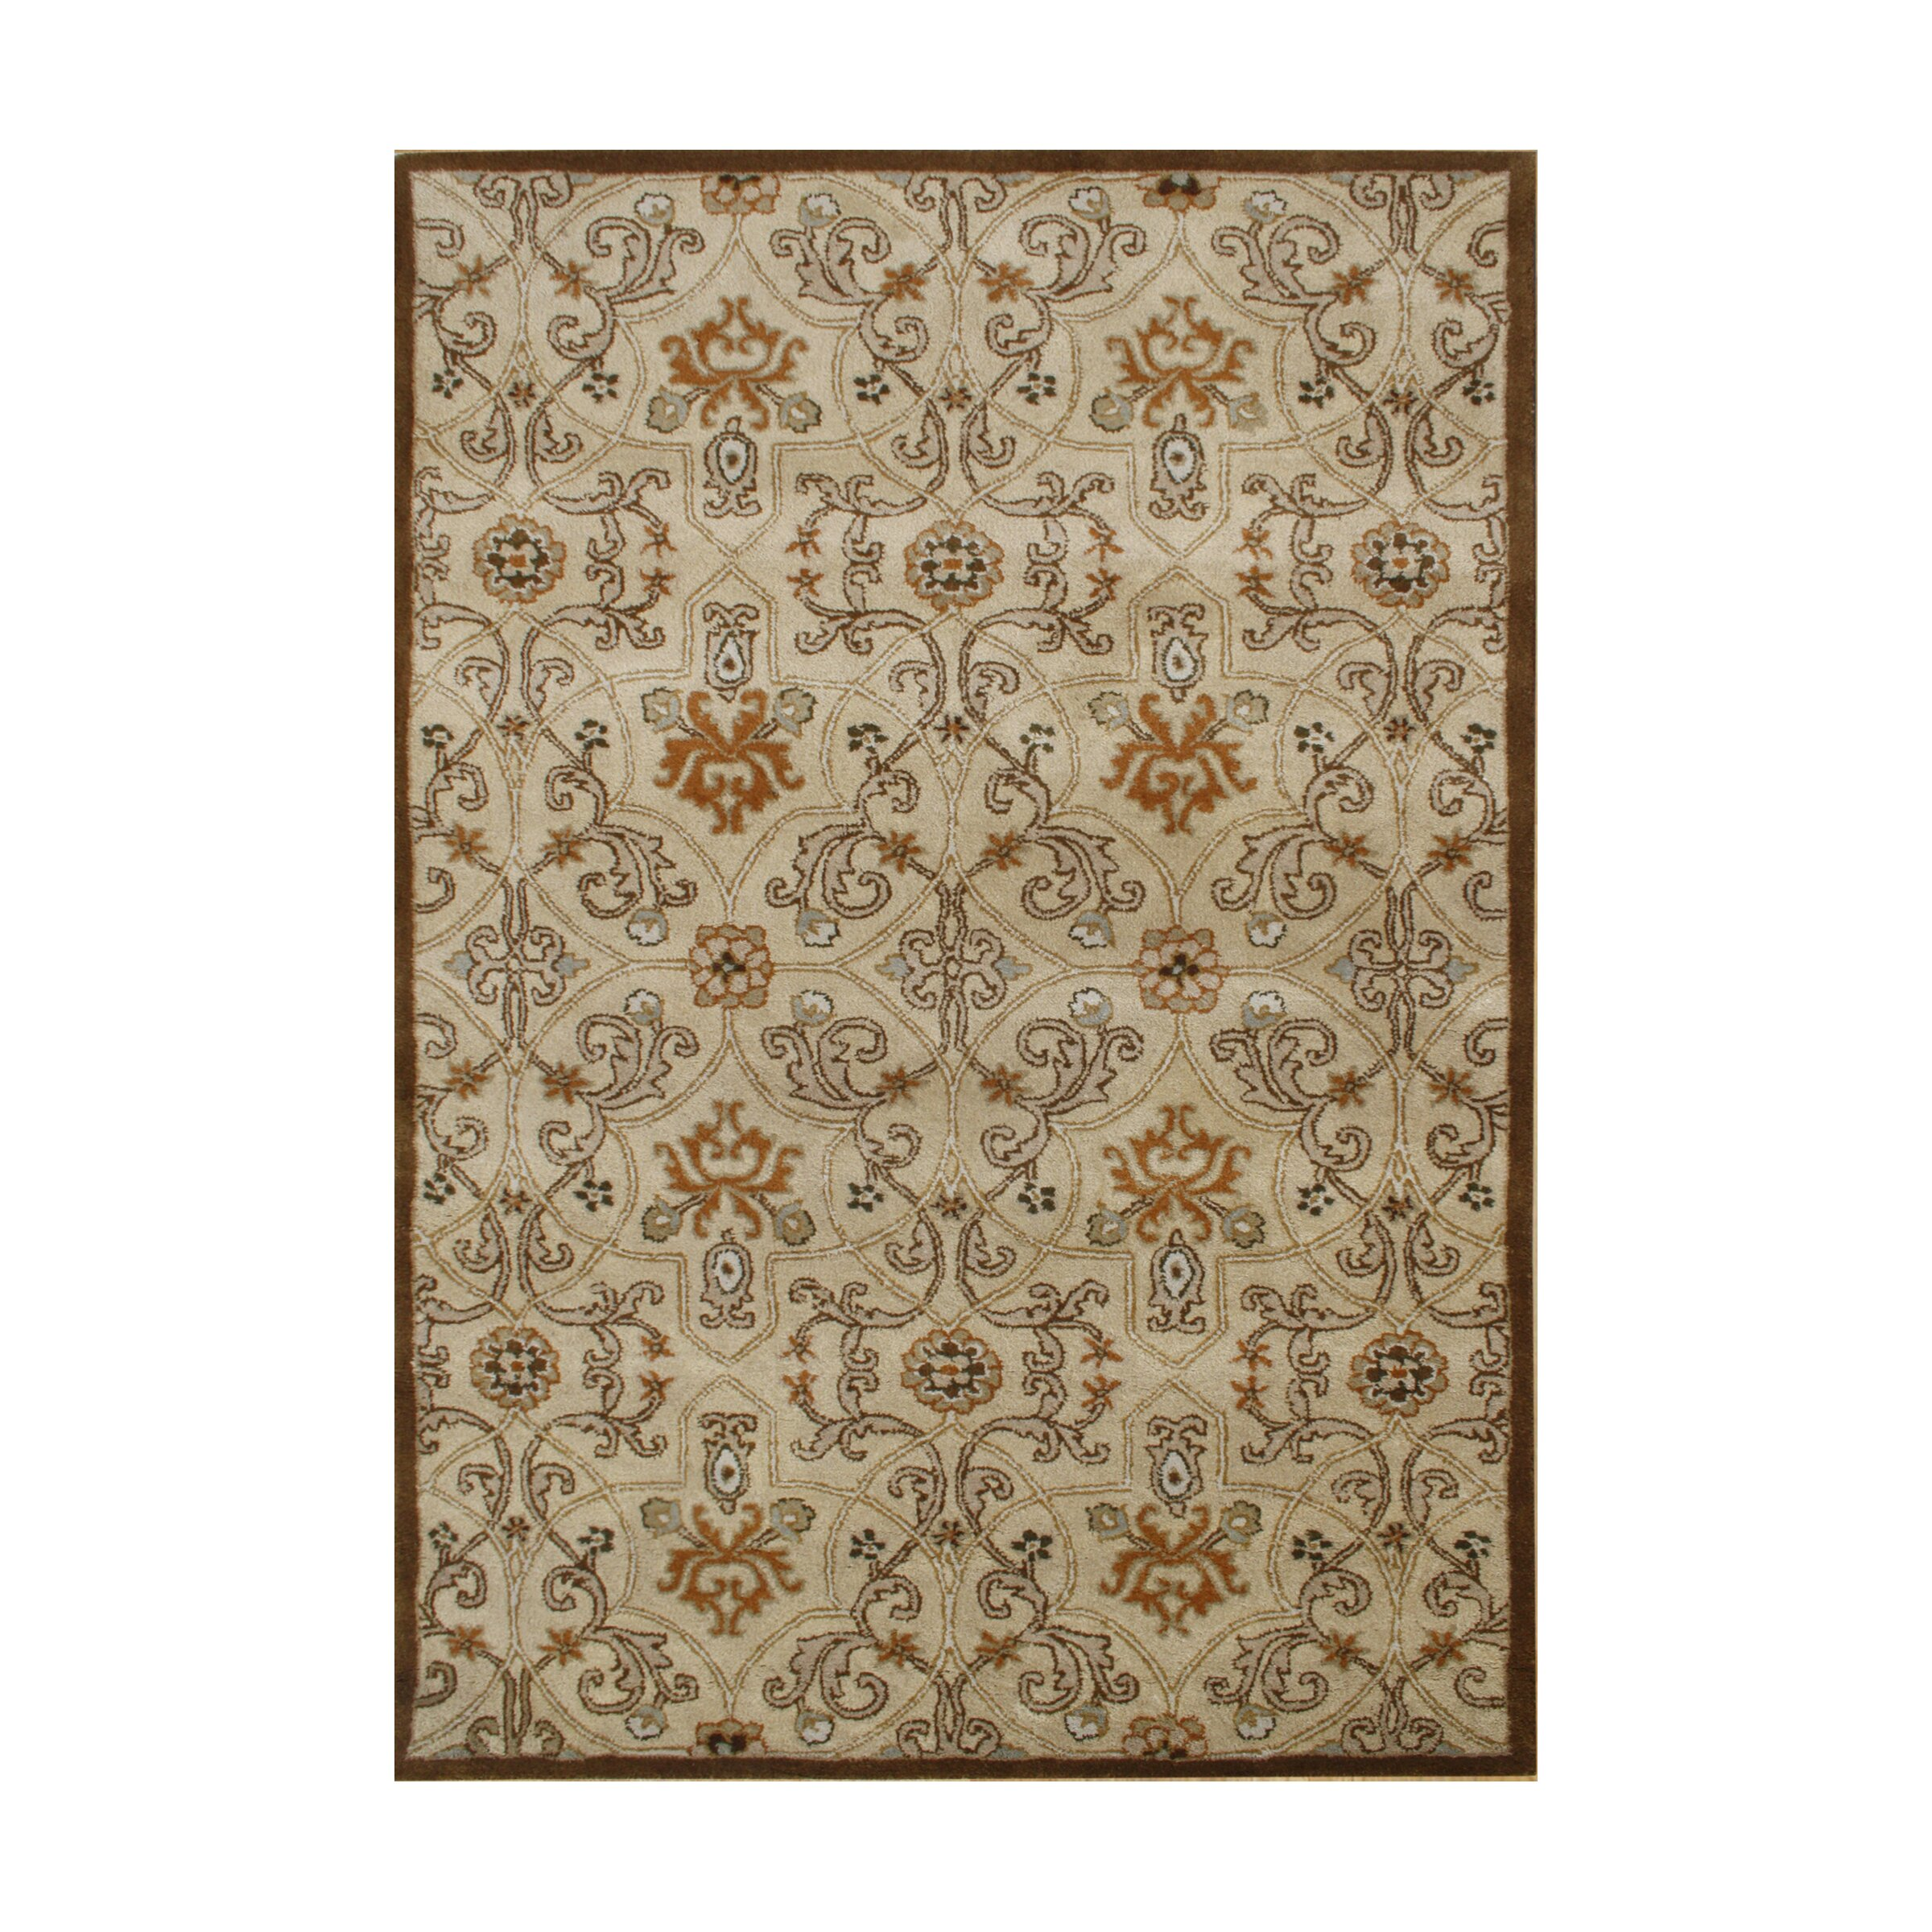 Alliyah rugs new zealand handmade brown area rug reviews for Custom made area rugs